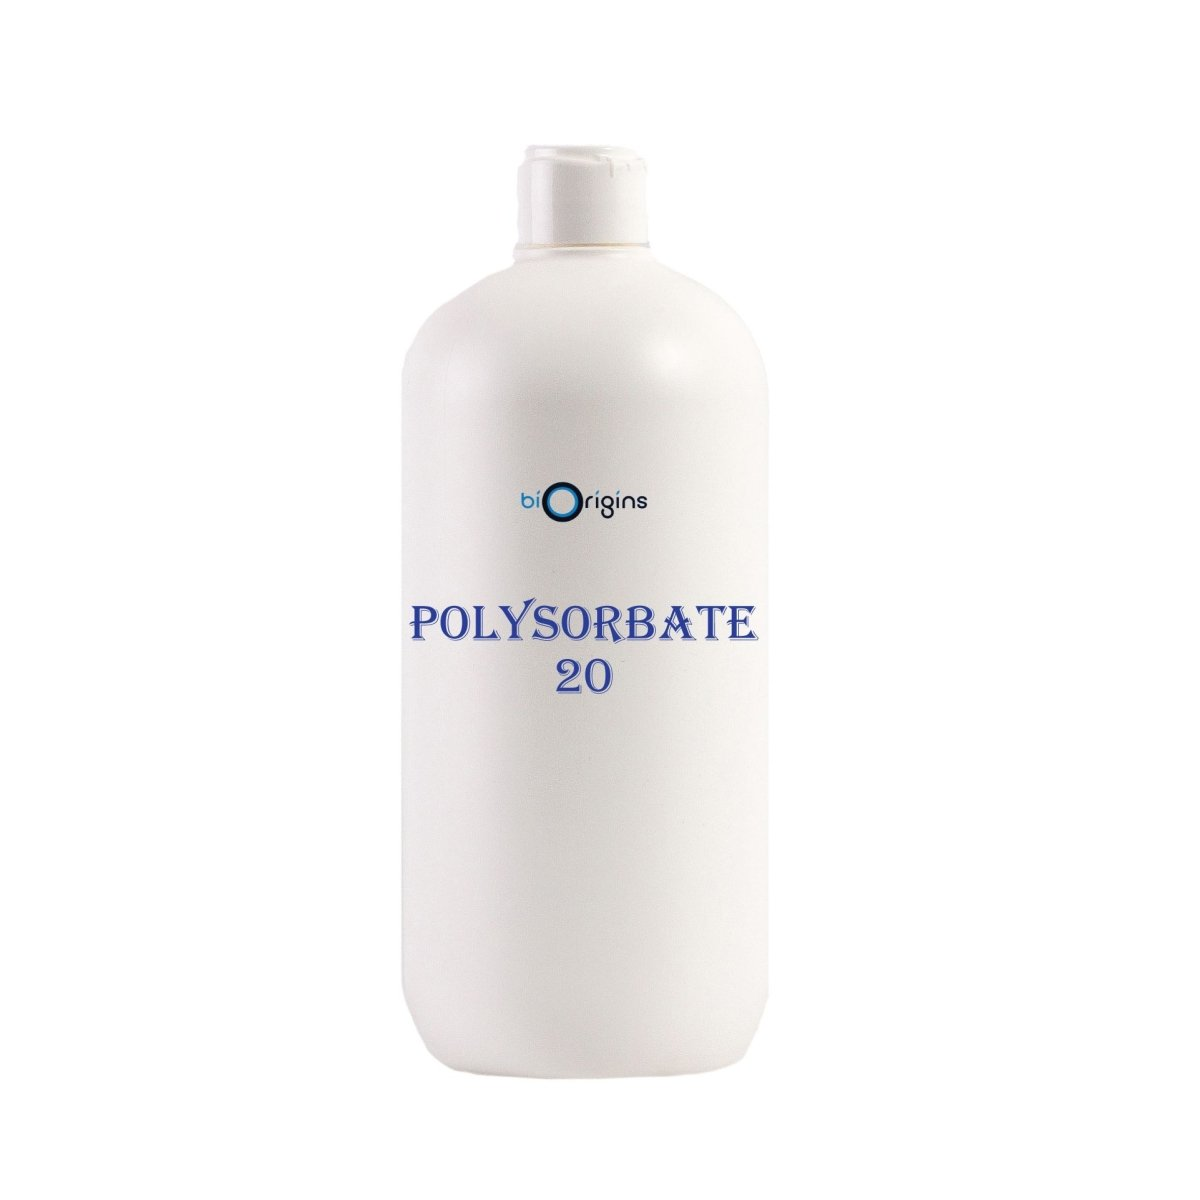 Polysorbate 20 - Solubilisers - Mystic Moments UK